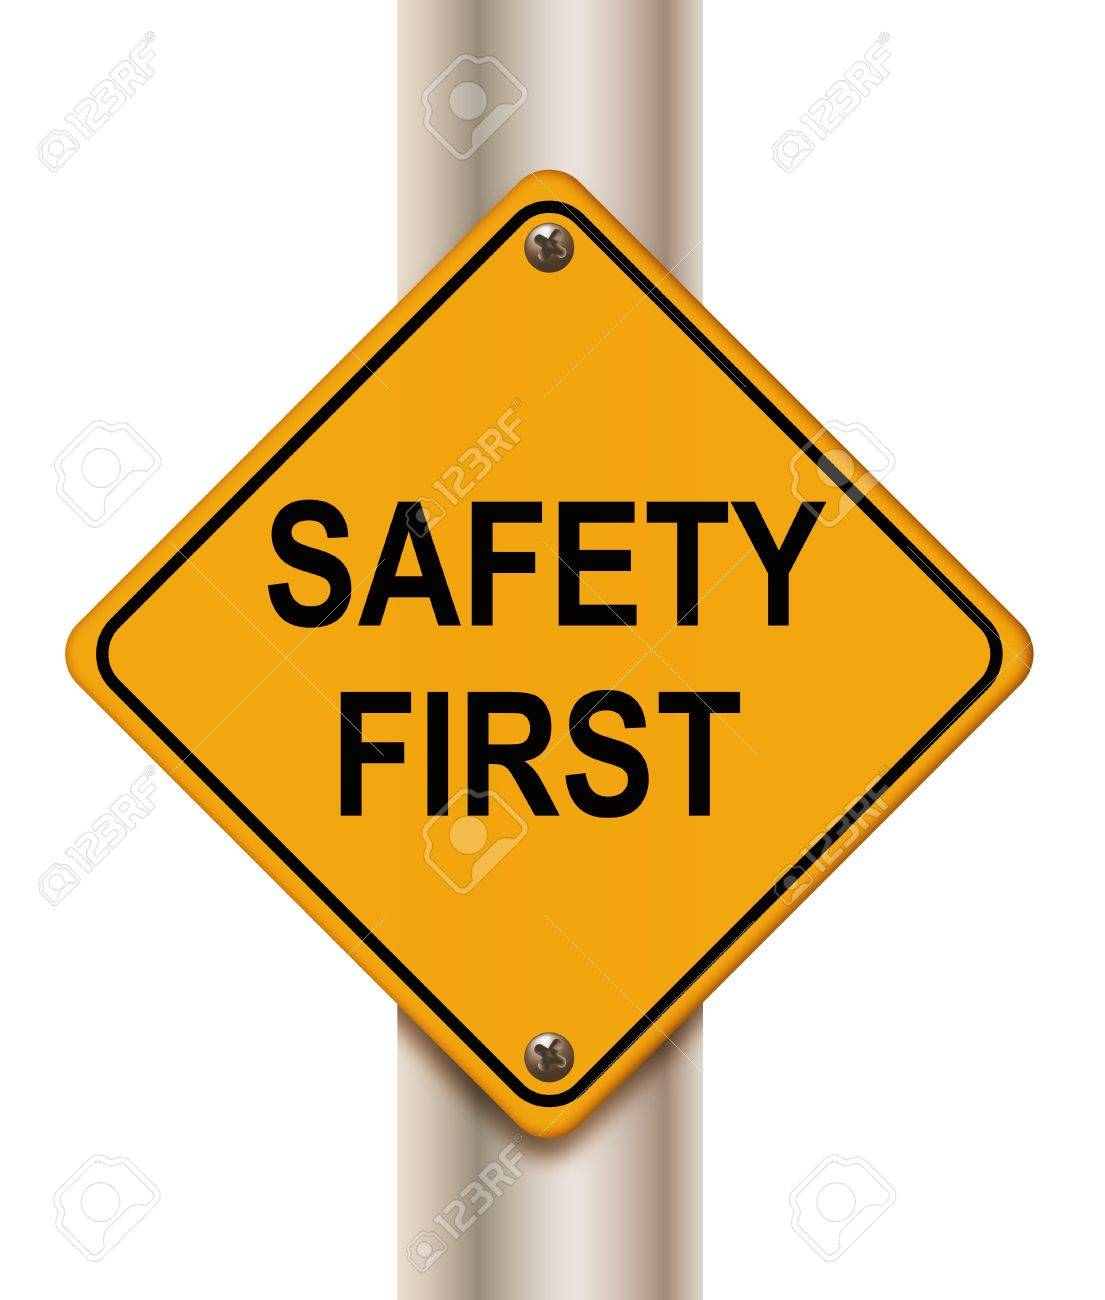 Road sign 'safety first' on white background Stock Photo - 10402536